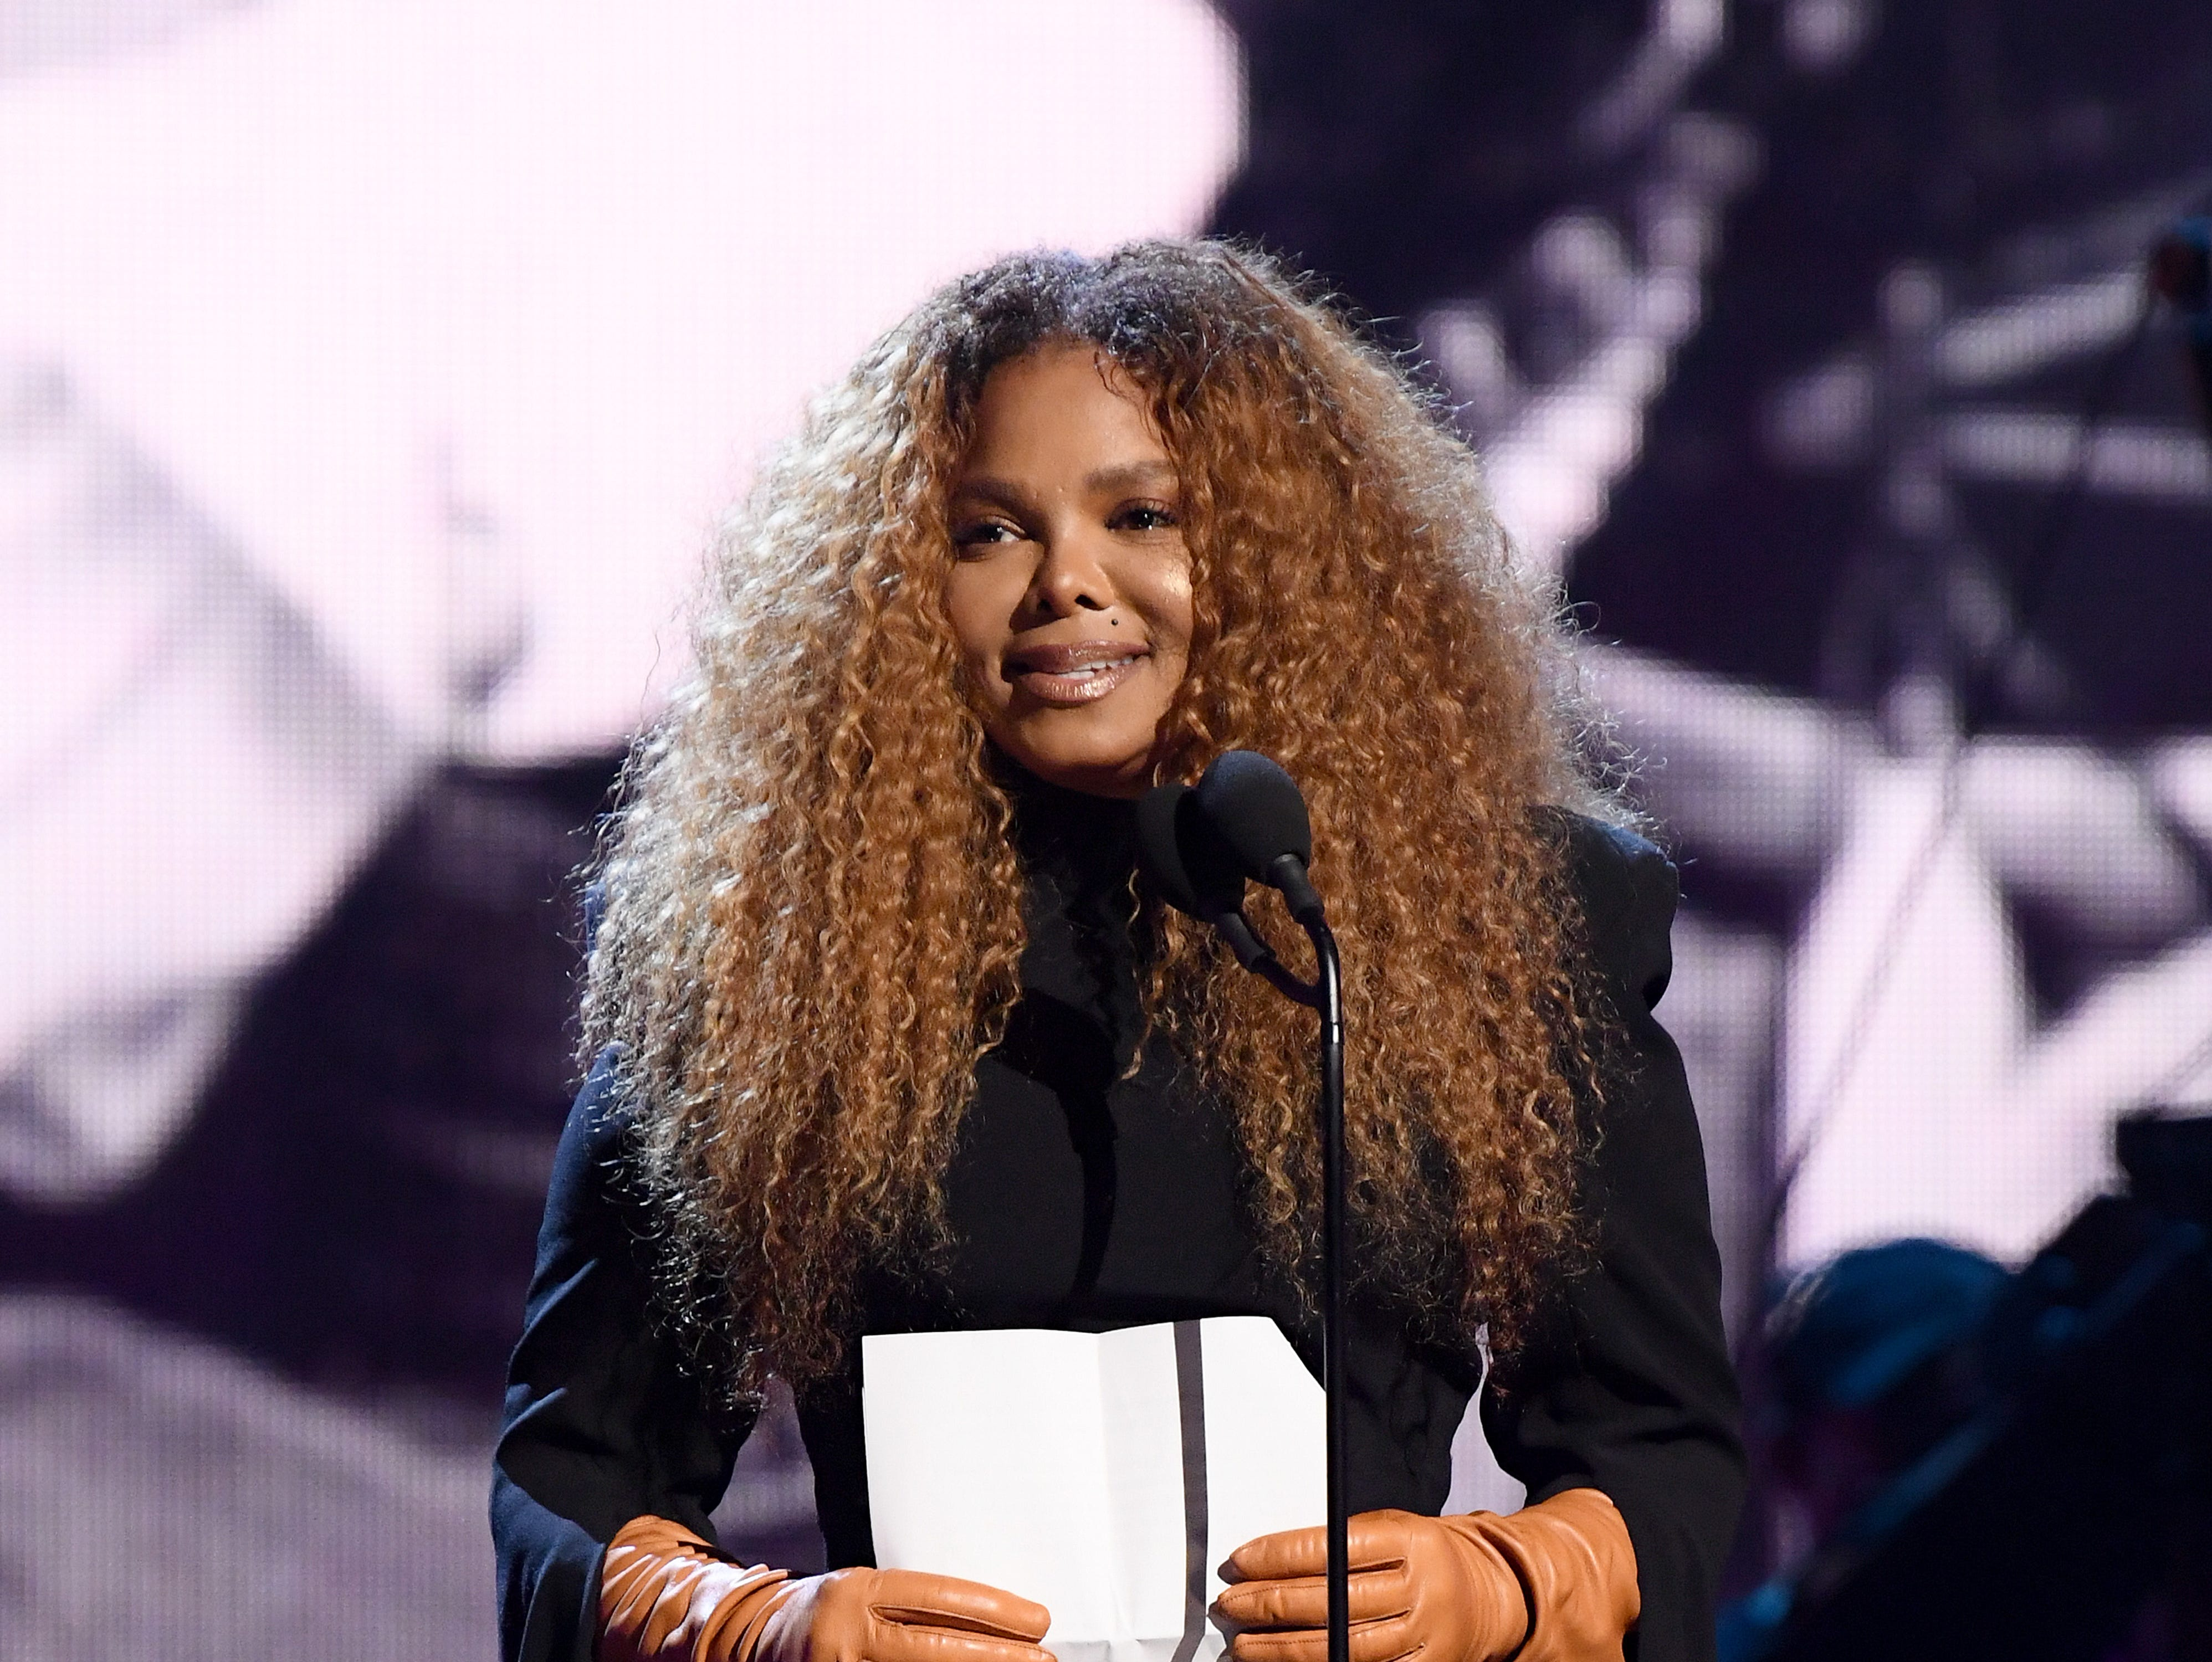 NEW YORK, NEW YORK - MARCH 29: Inductee Janet Jackson speaks onstage during the 2019 Rock & Roll Hall Of Fame Induction Ceremony - Show at Barclays Center on March 29, 2019 in New York City. (Photo by Dimitrios Kambouris/Getty Images For The Rock and Roll Hall of Fame) ORG XMIT: 775320663 ORIG FILE ID: 1139195642